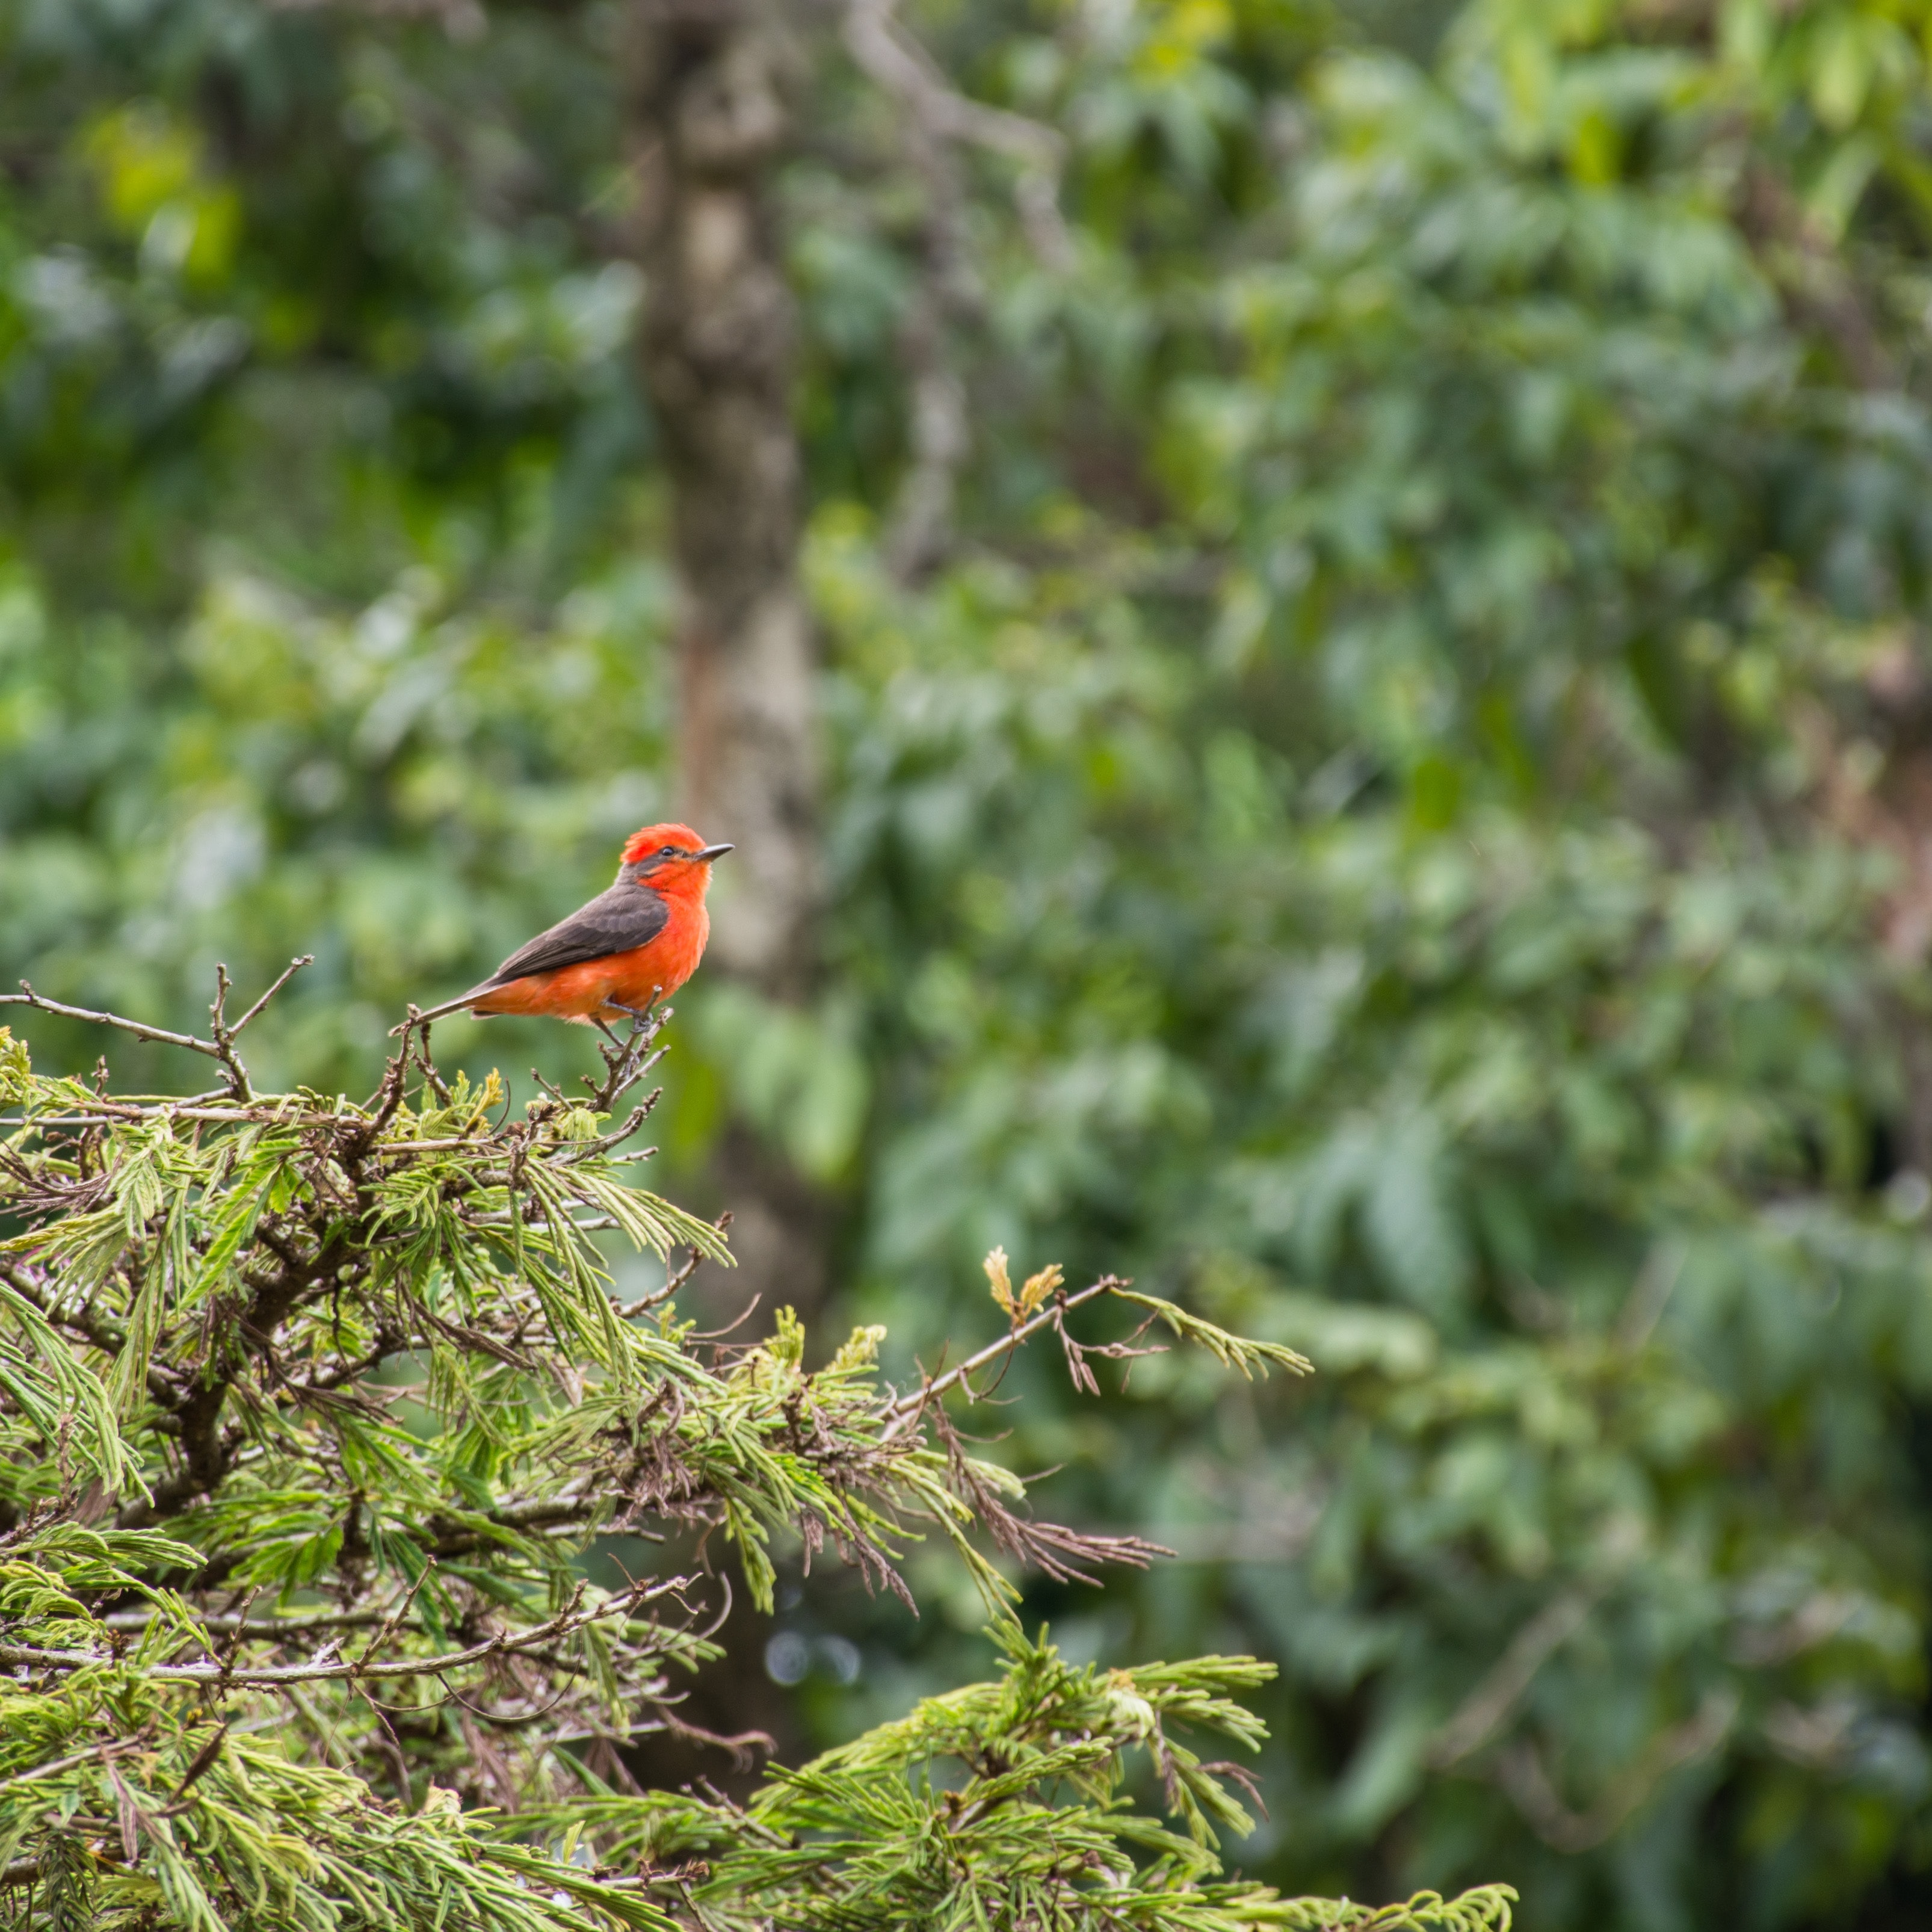 red and gray bird perched on tree